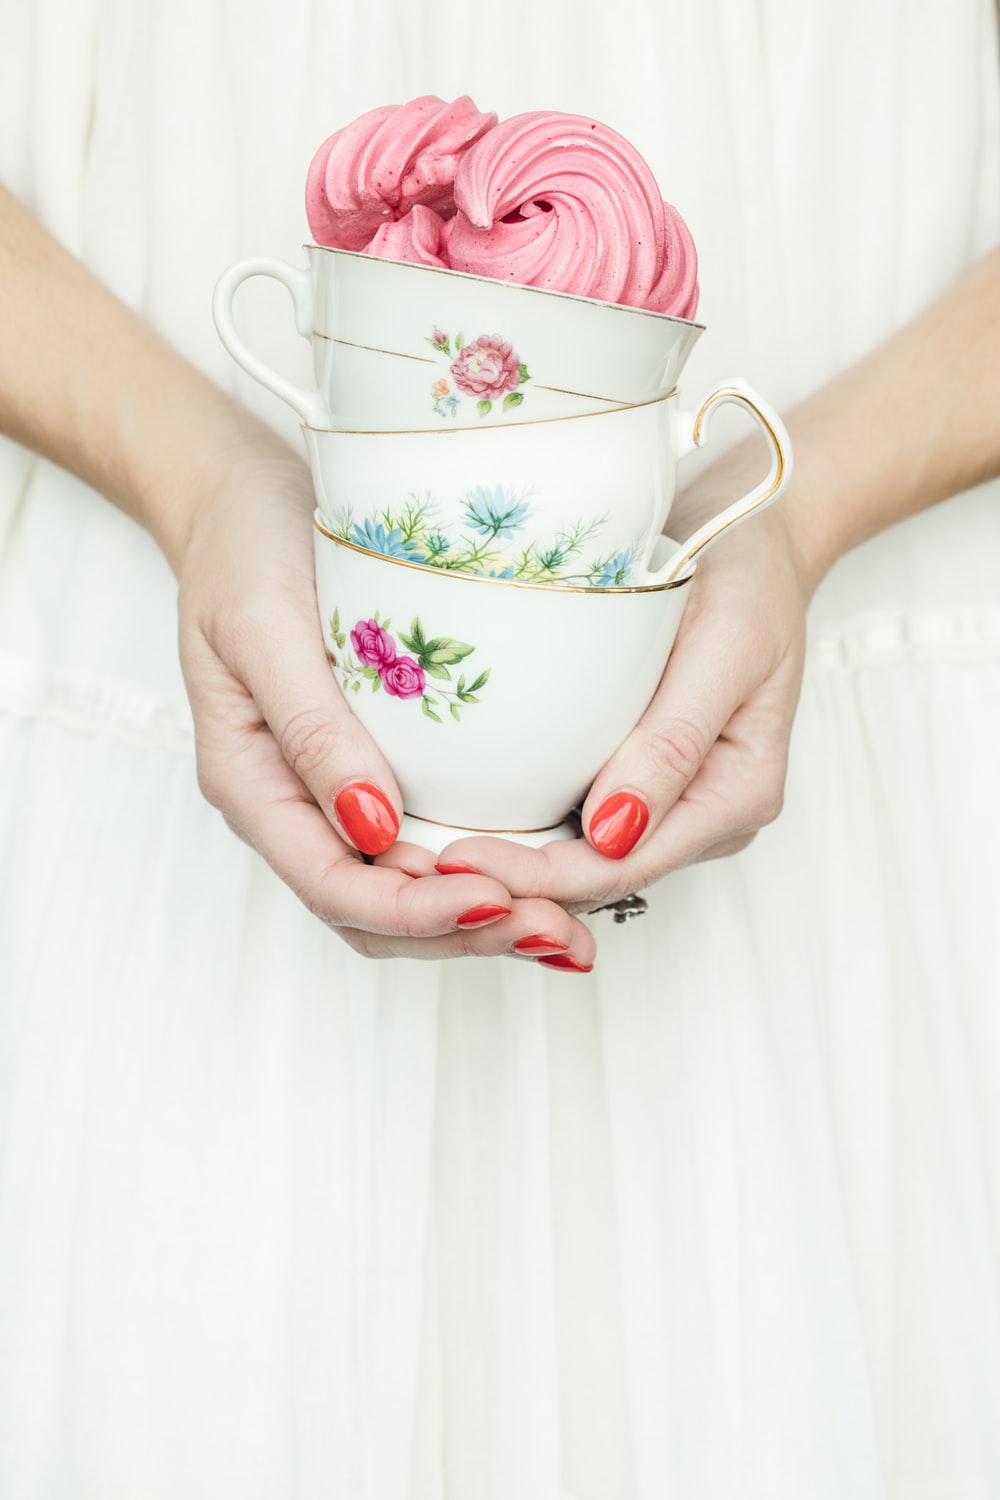 person holding three floral ceramic teacup